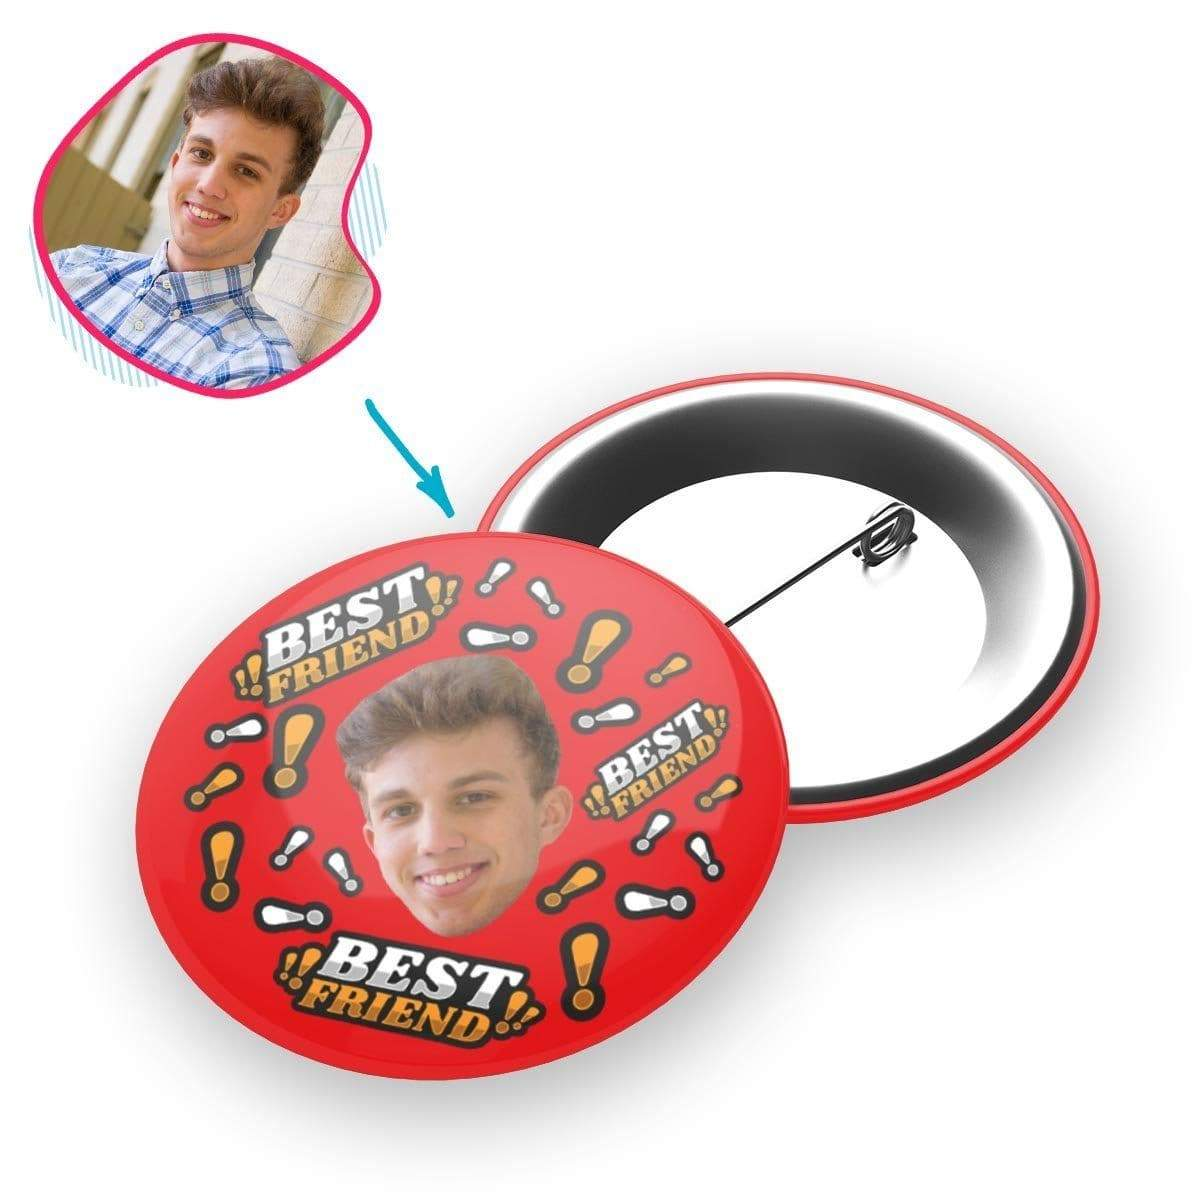 Best Friend Personalized Pin Button